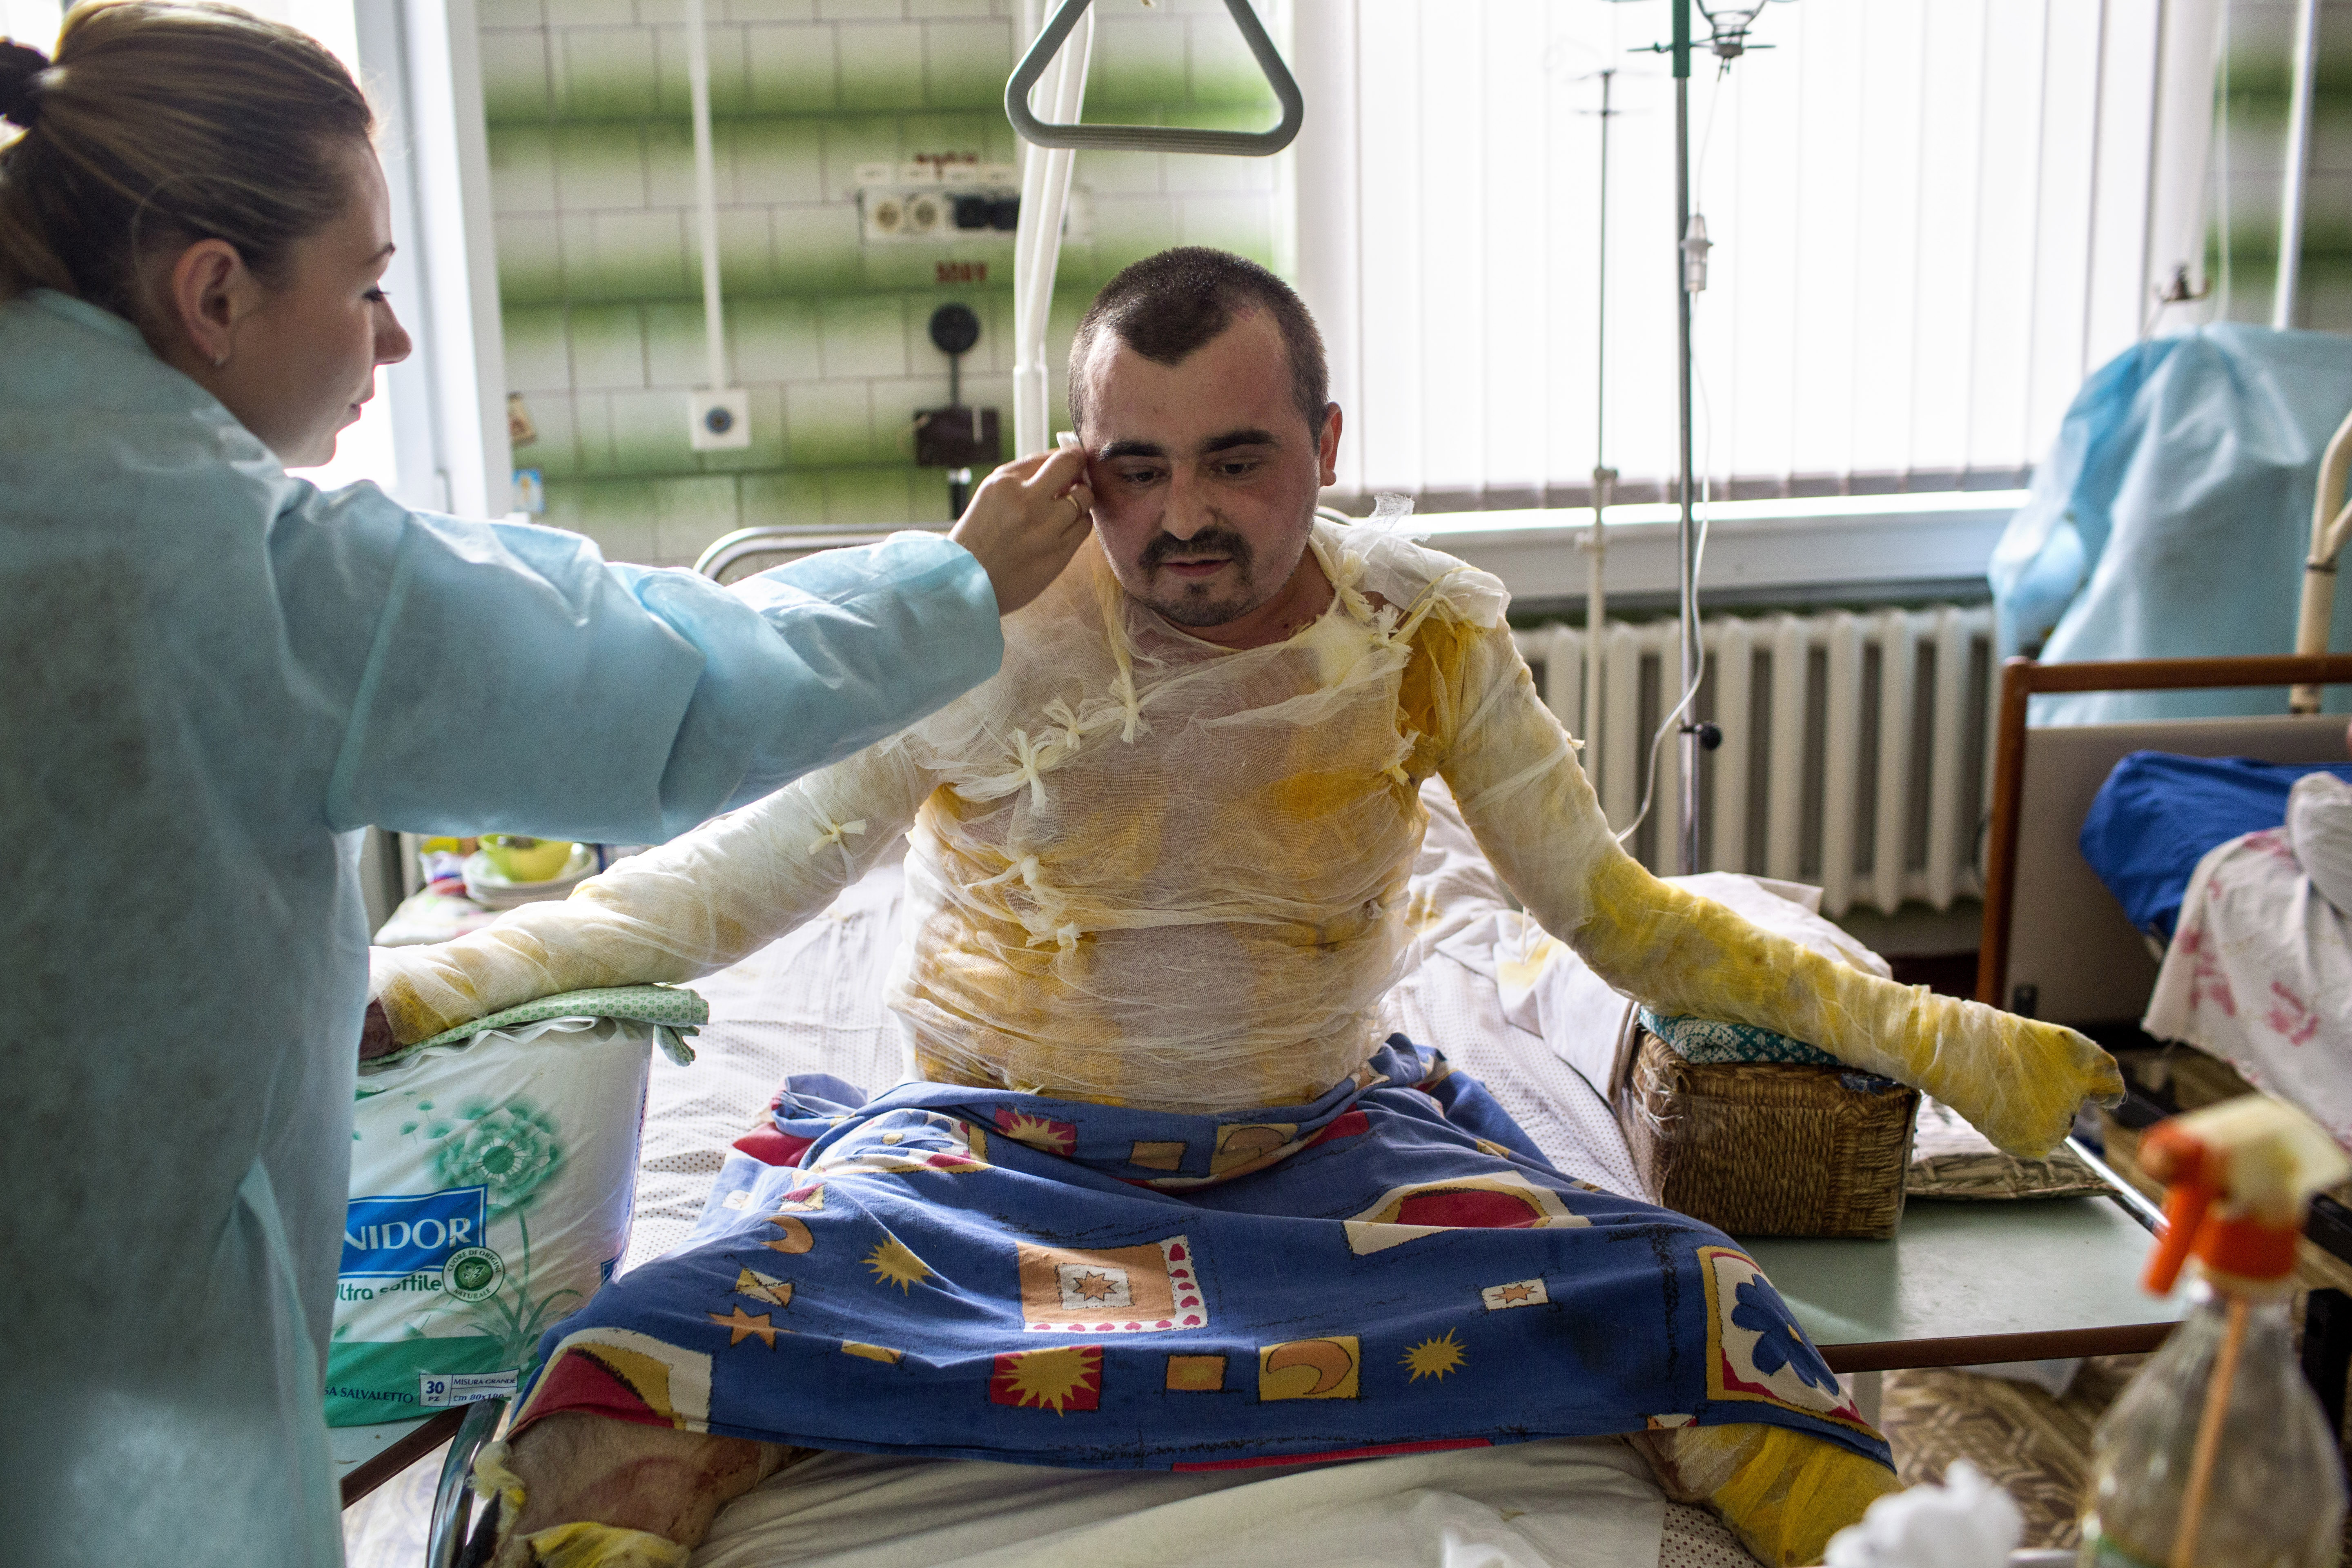 """Svitlana Kapusta, 29, wipes the brow of her husband, Sgt. Sergey Masan, a Ukrainian paratrooper from the southern region of Mykolaiv, as he recovers in a hospital in Dnipropetrovsk, Ukraine, Sept. 29, 2014. Masan sustained burns to 70% of his body and lost several fingers in a grad rocket attack in the village of Dyakovo, in Luhansk Oblast near the Russian border, in July 2014. He spent approximately three months in the warzone and asserted that his brigade was frequently fired upon with grad rockets launched from Russia into Ukraine. """"Our life has changed completely,"""" Kapusta said."""